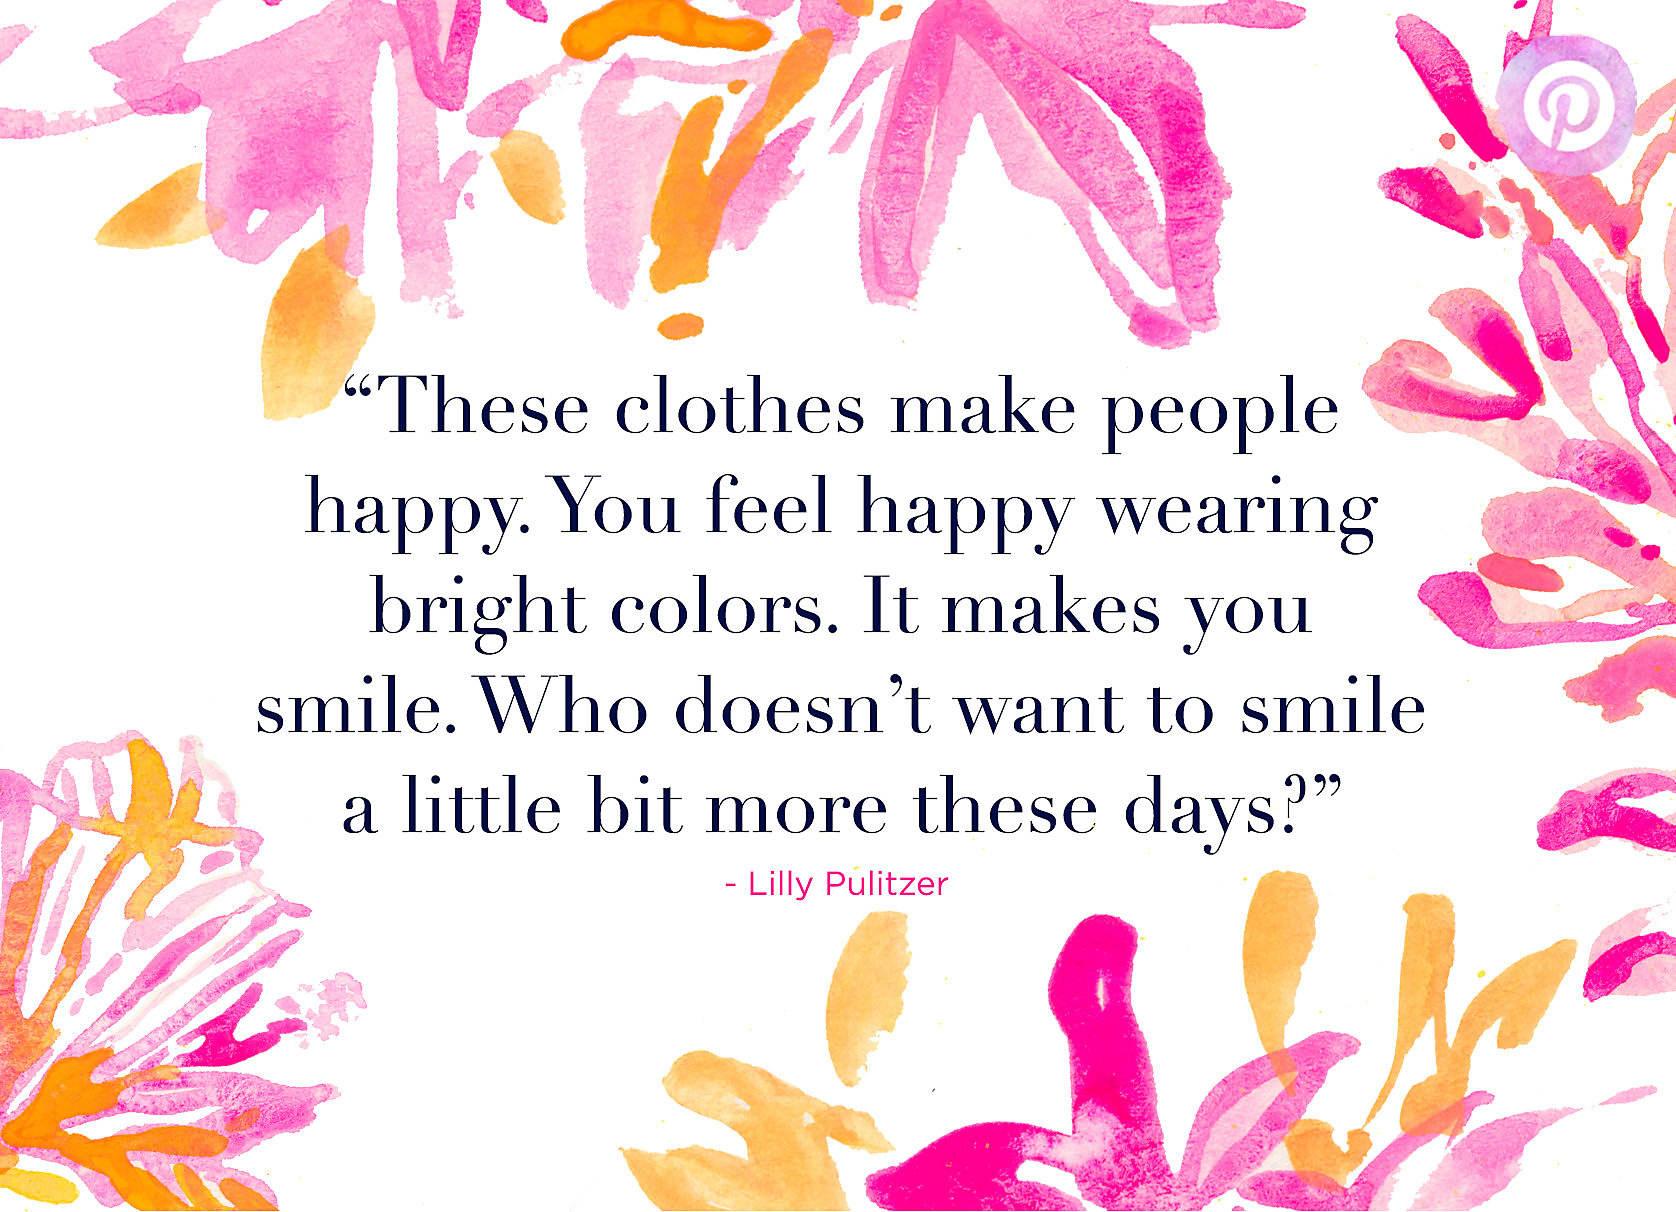 Lilly Pulitzer quote about Lilly clothes making people smile